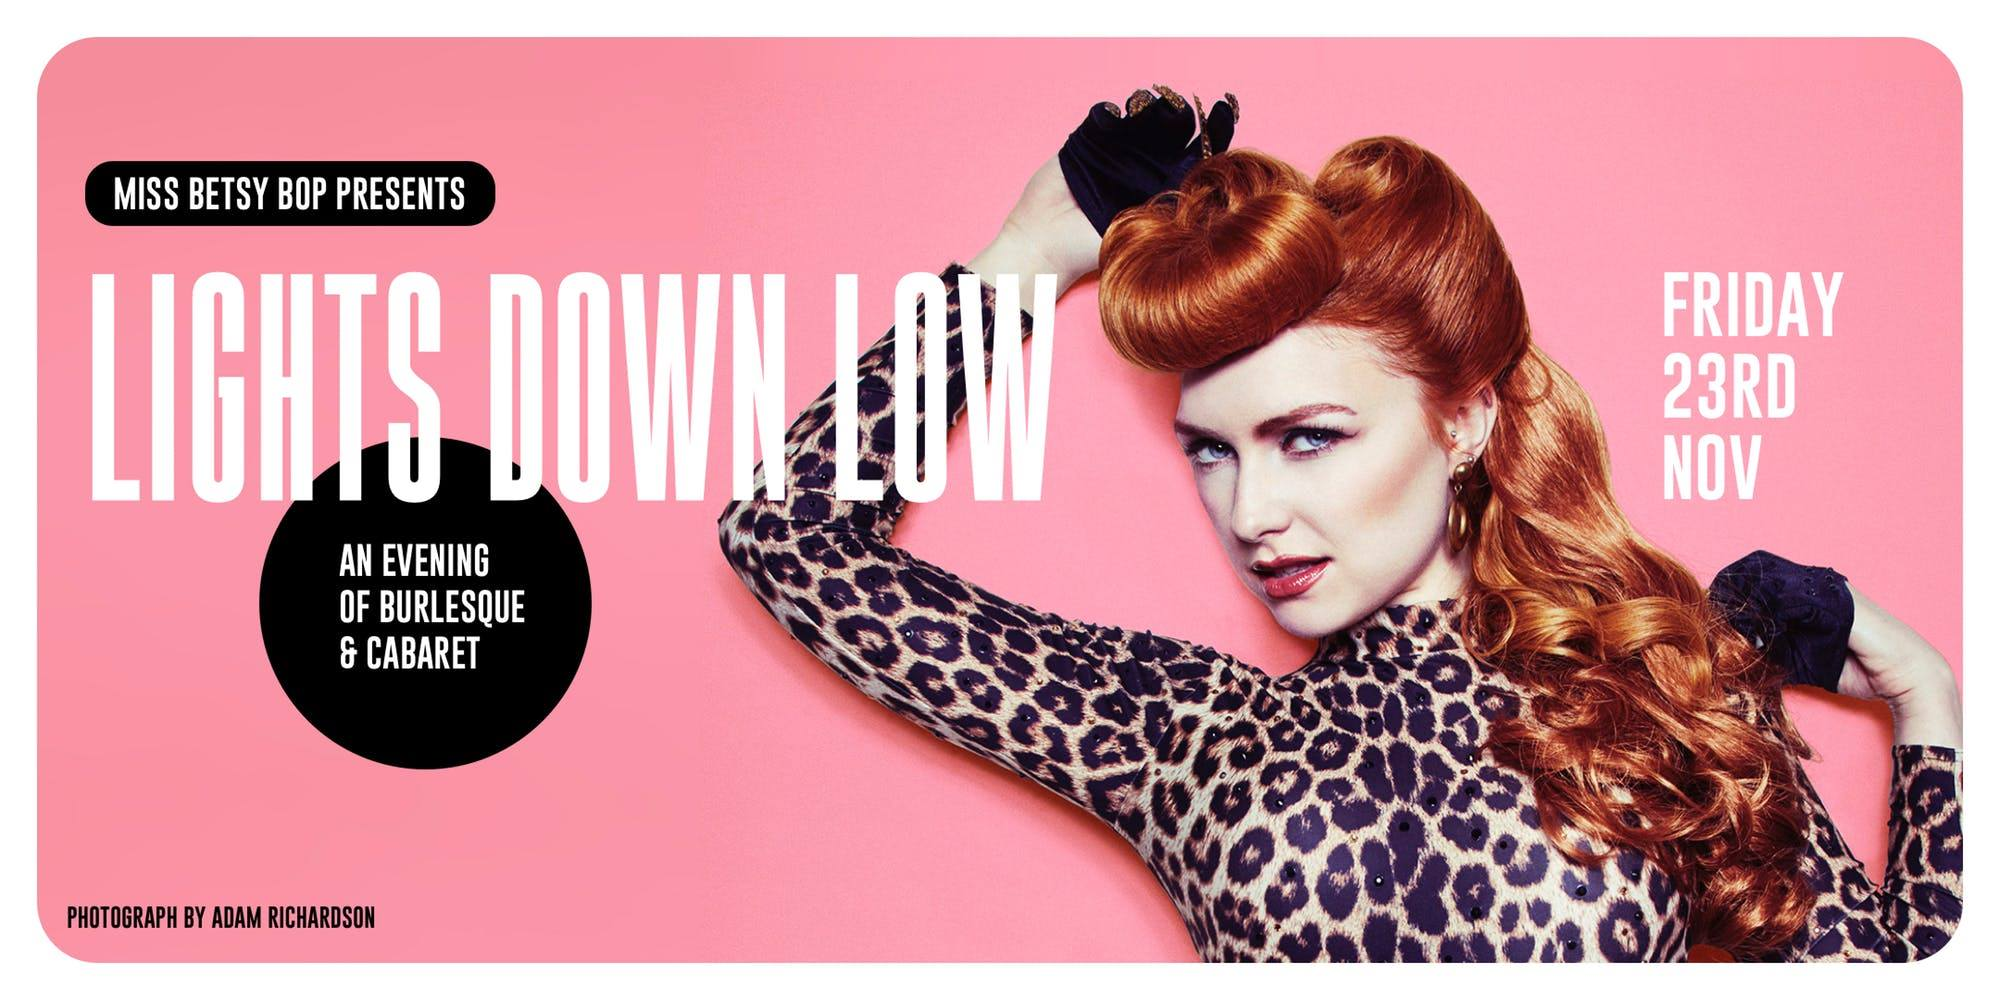 LIGHTS DOWN LOW - An evening of Burlesque & Caberet at The Fiddler's Elbow promotional image